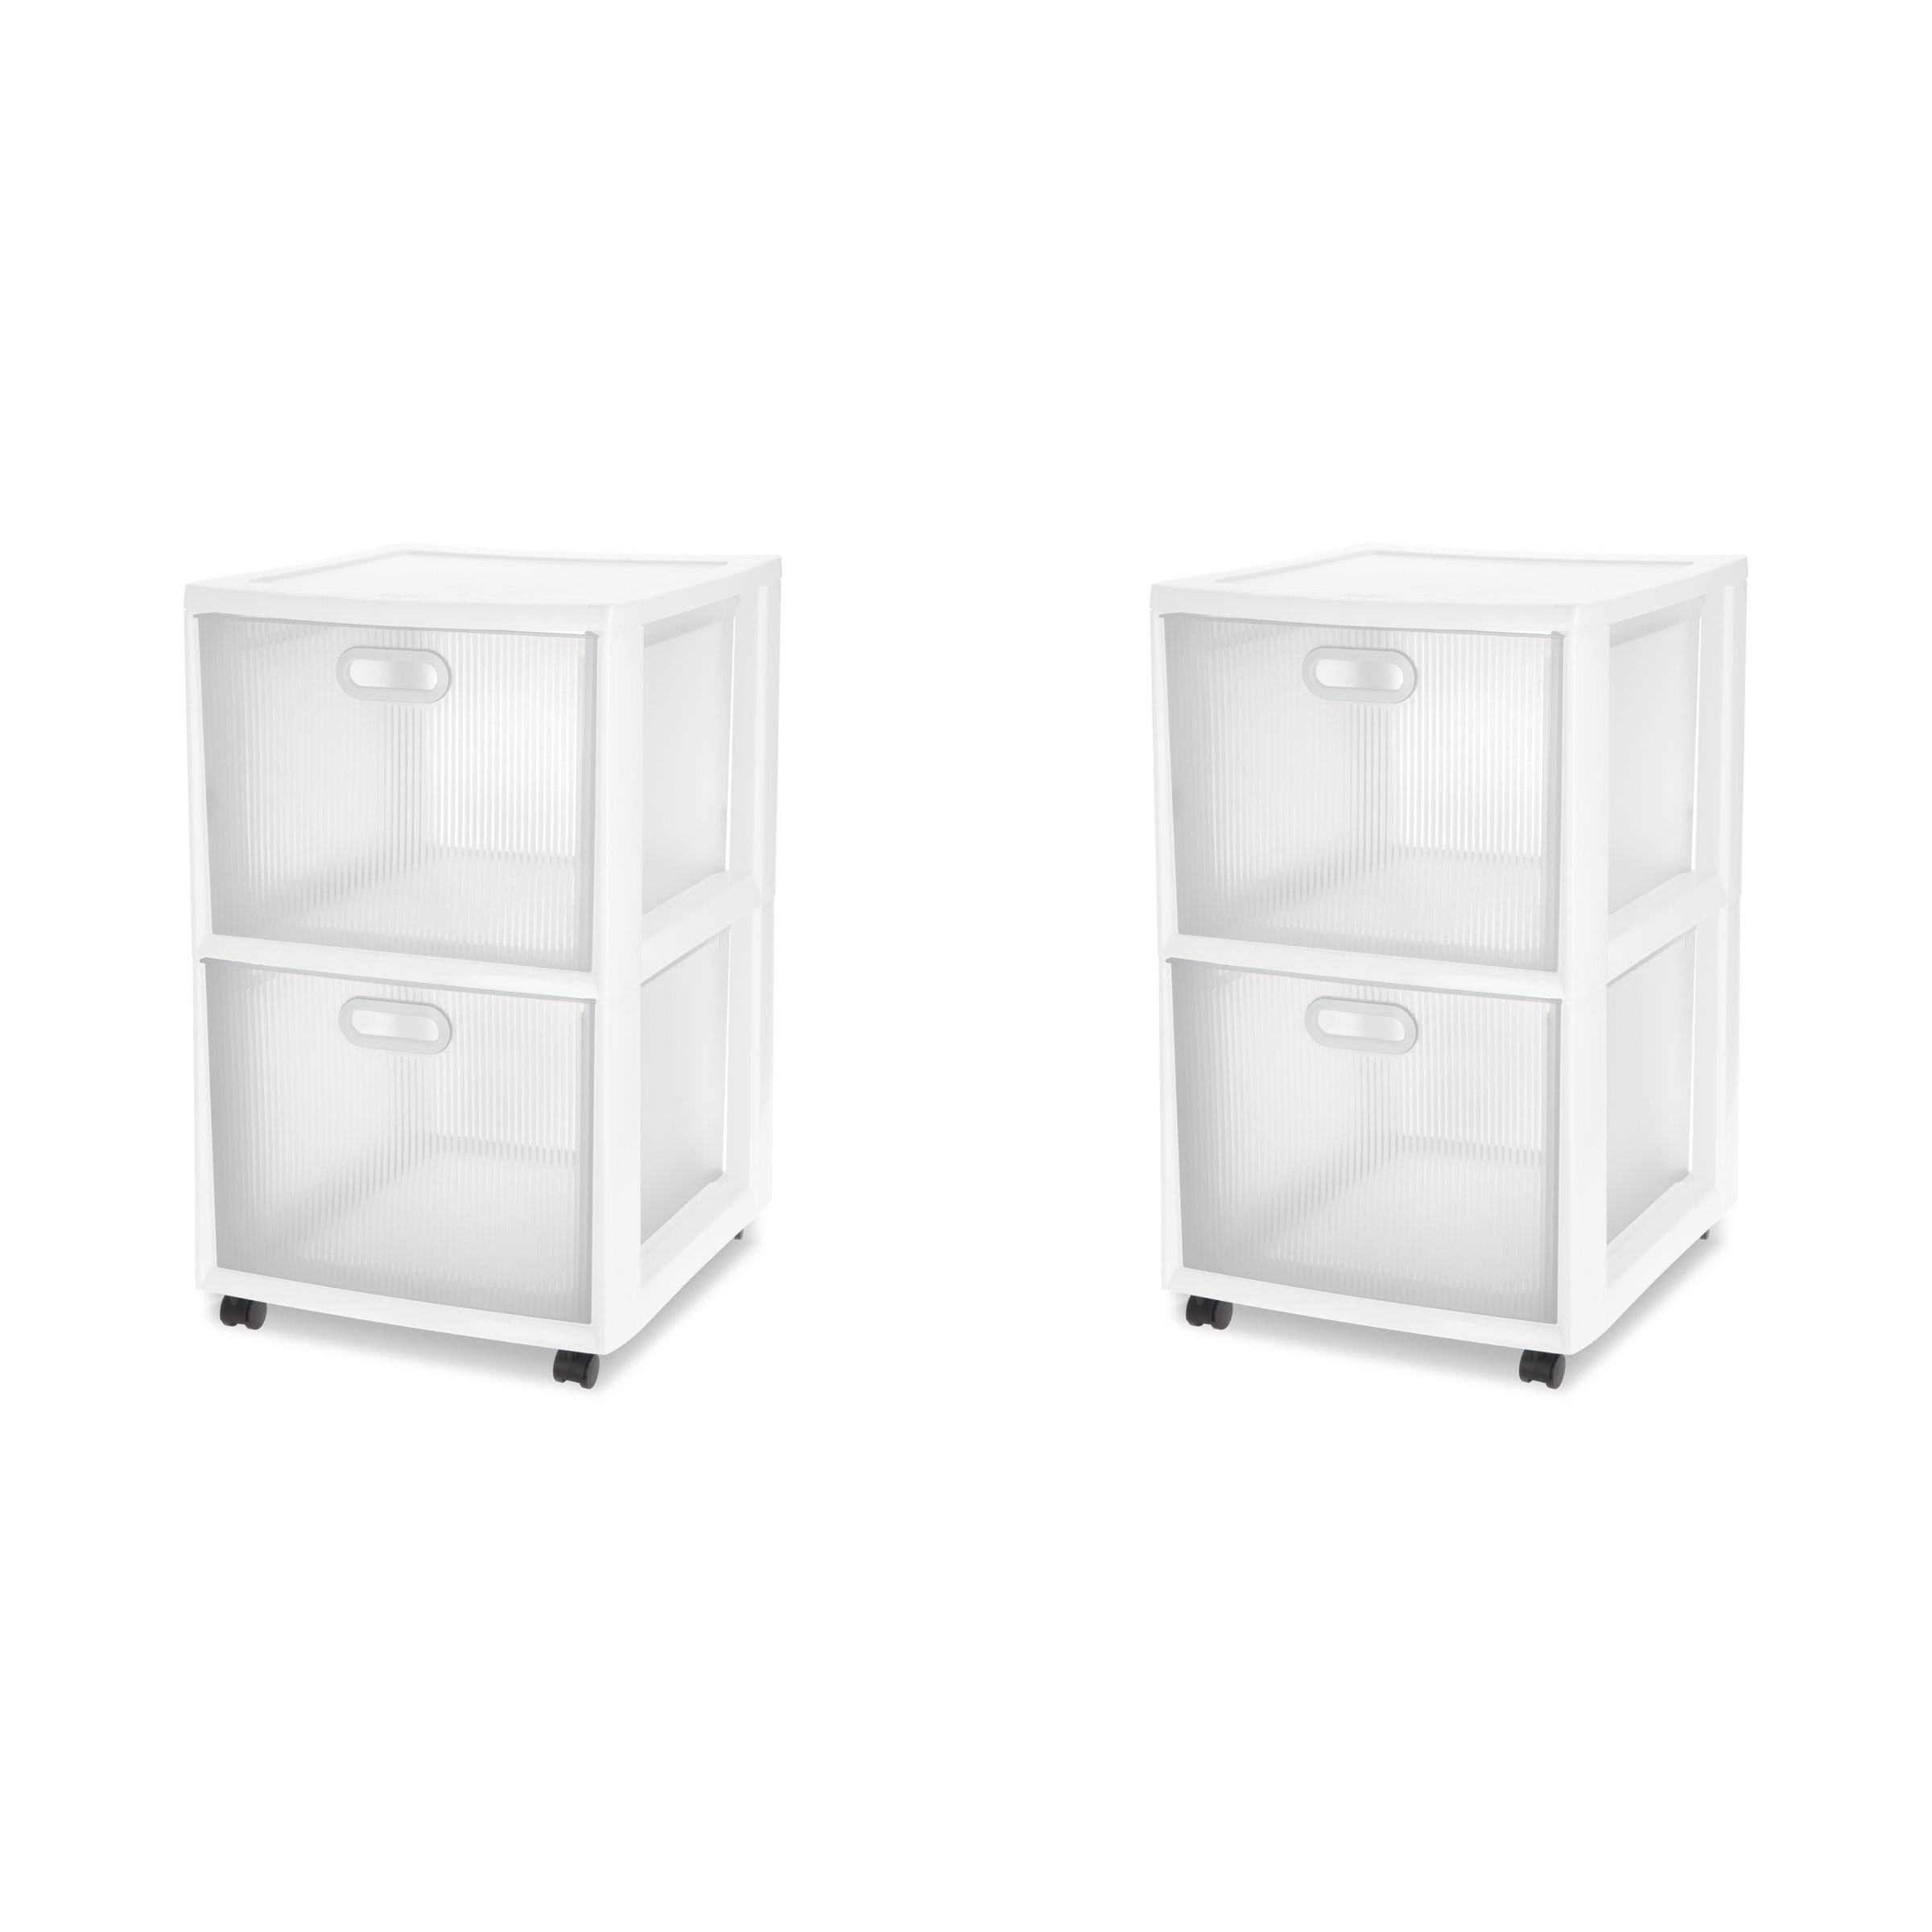 Sterilite 36208002 Ultra 2 Drawer Cart, White Frame & Clear Textured Drawers w/ Handles &  Black Casters, 2-Pack